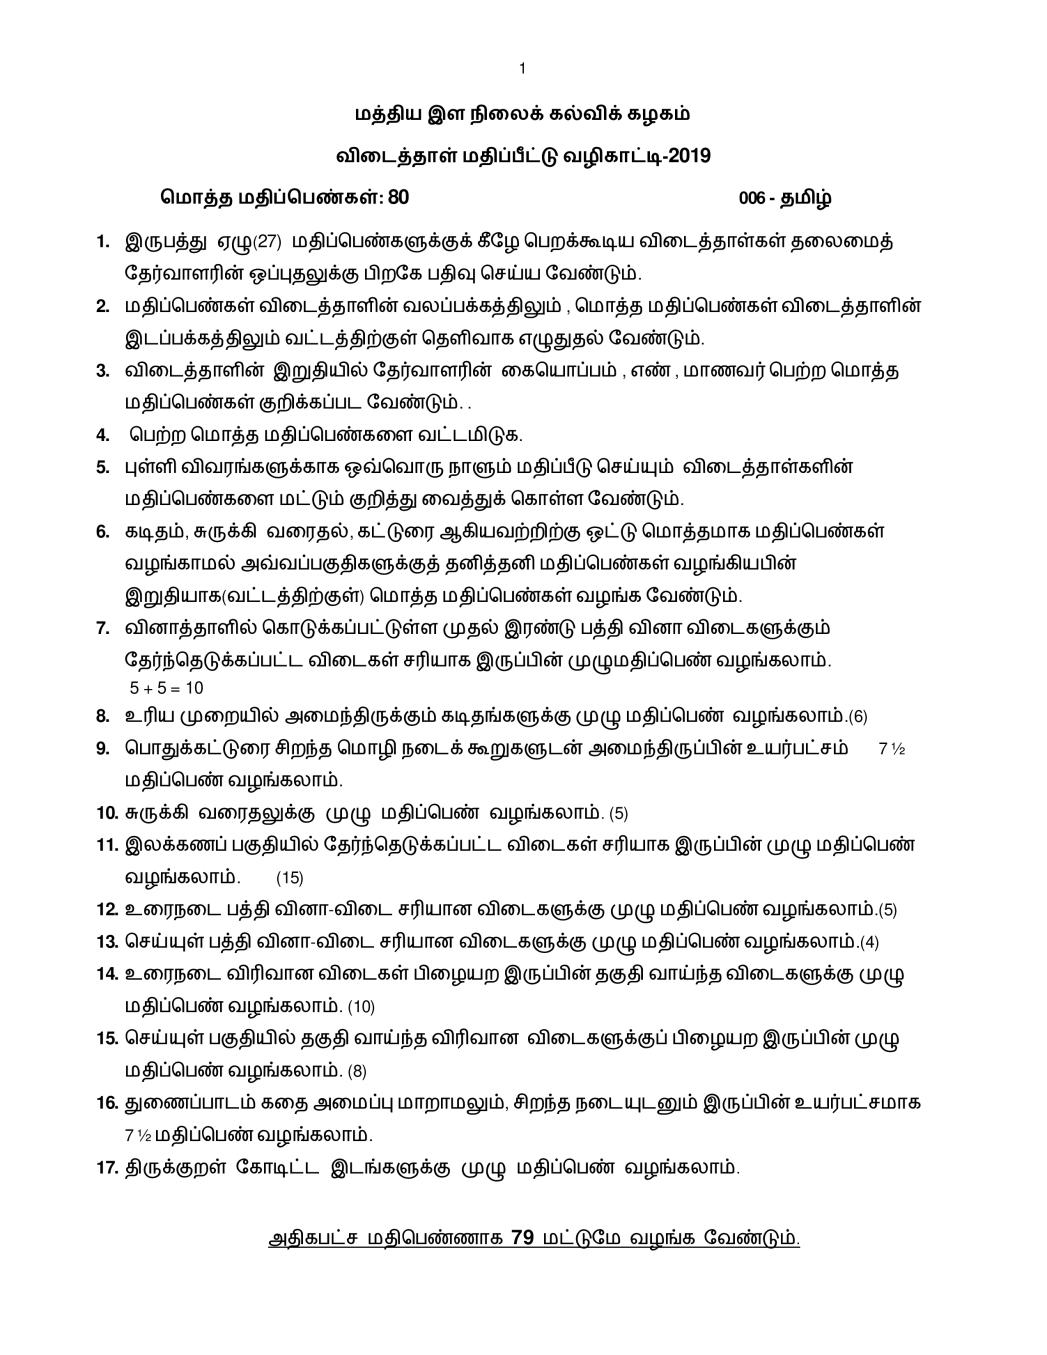 CBSE Class 10 Tamil Question Paper 2019 Solutions